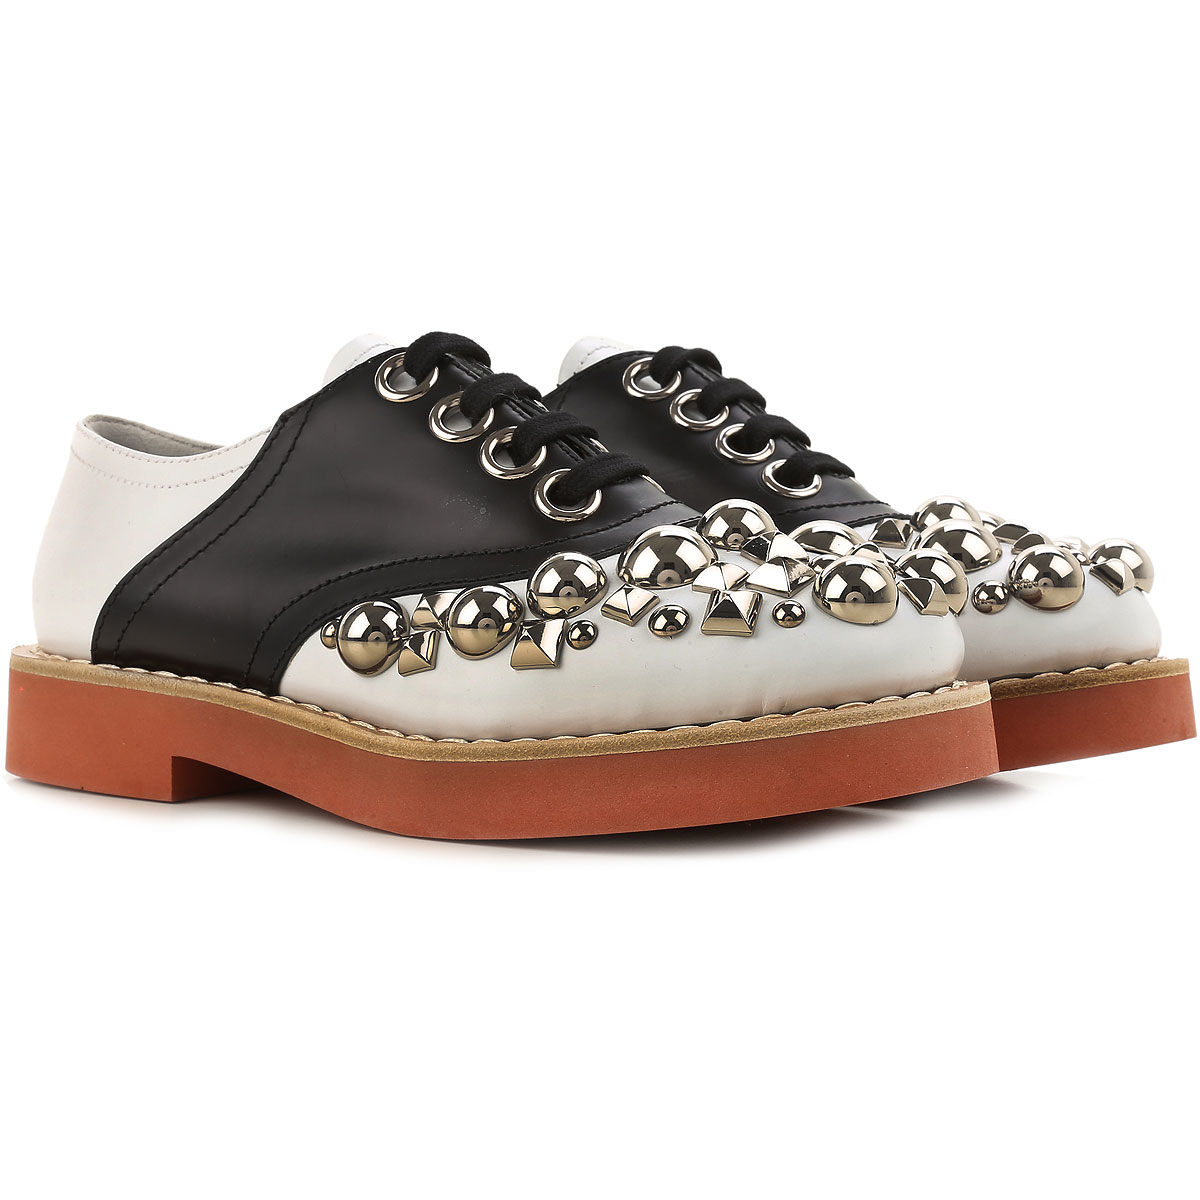 Miu Miu Brogues Oxford Shoes On Sale in Outlet White DK - GOOFASH - Womens LEATHER SHOES